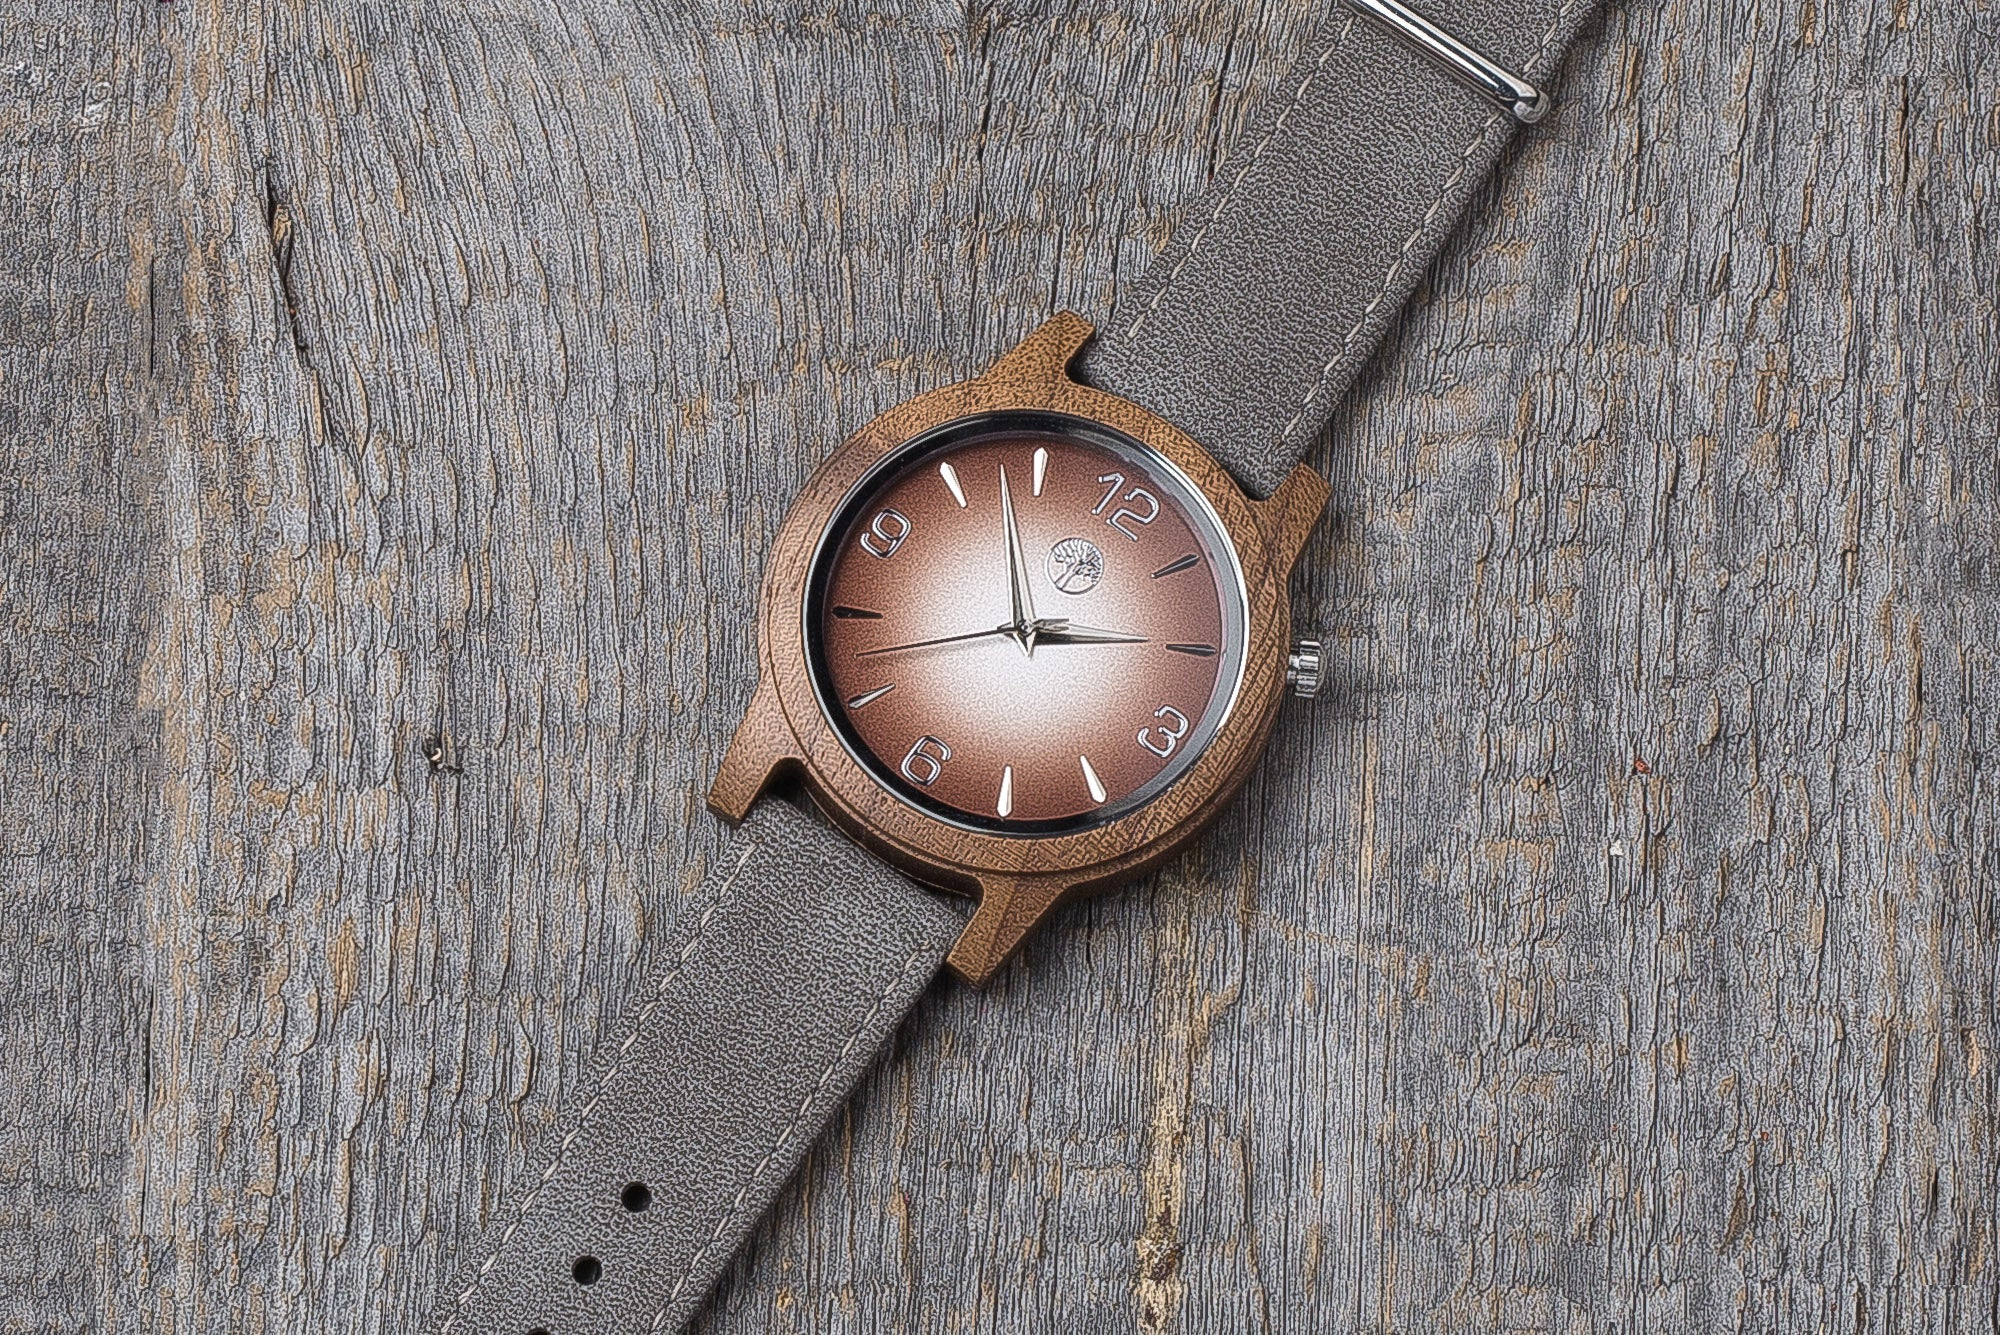 Walnut wood watch, gray strap